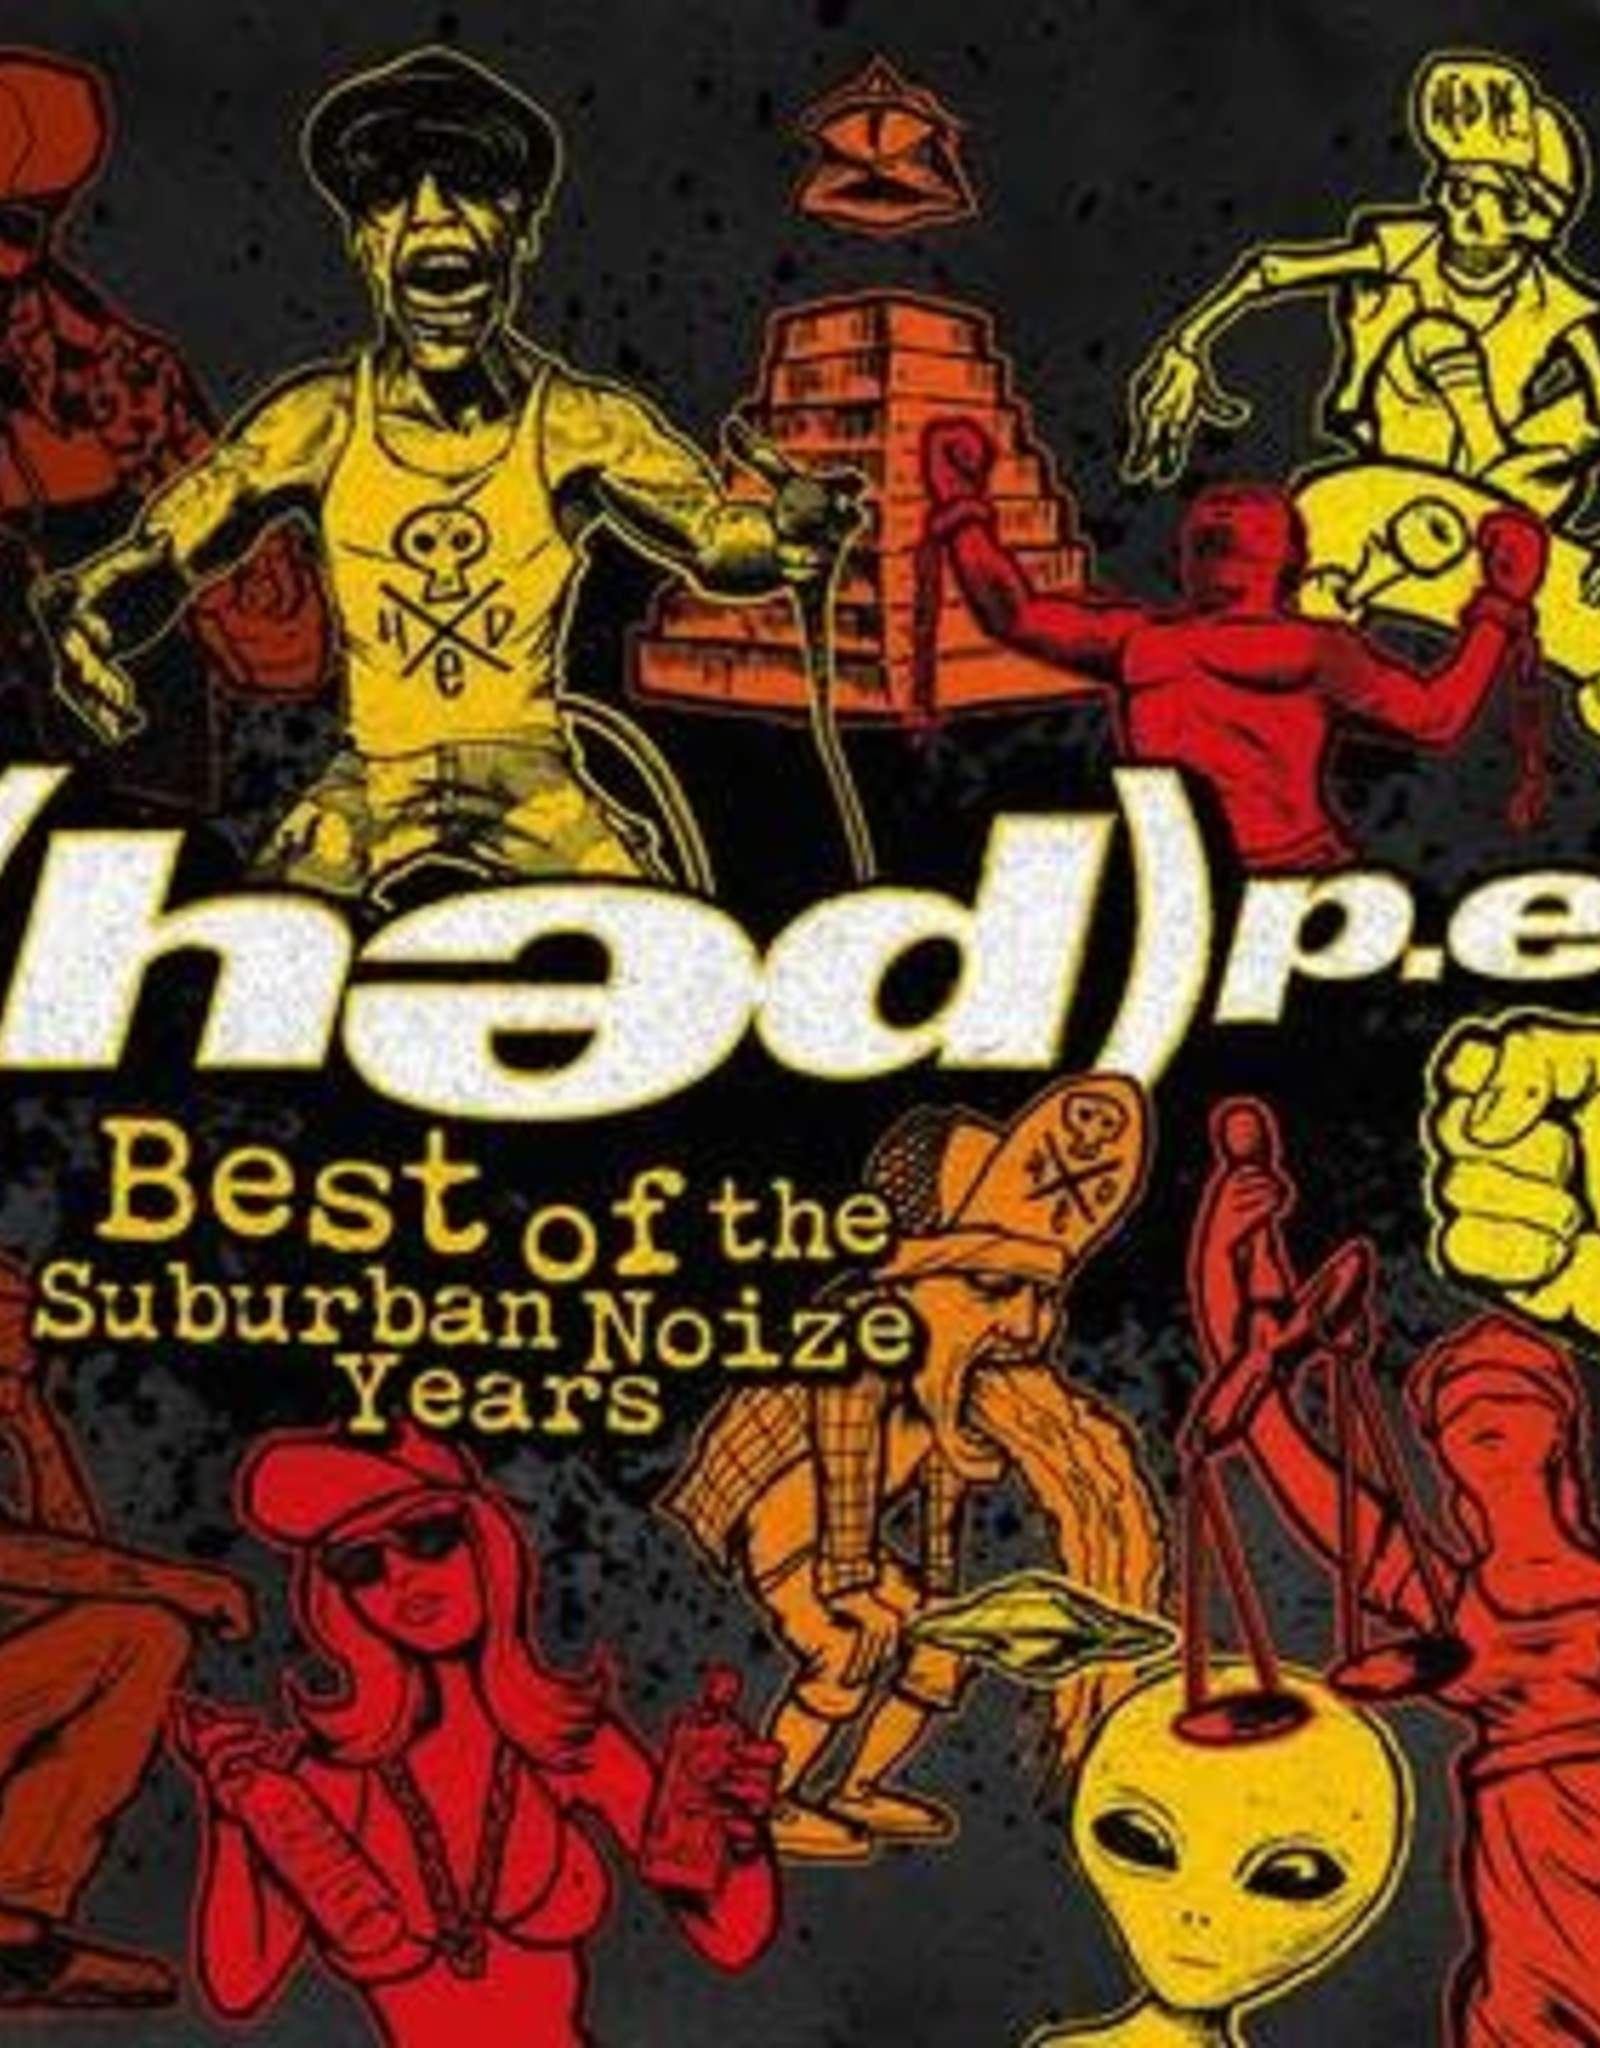 (Hed) P.E. - Best Of Suburban Noize Years (RSD 7/21)